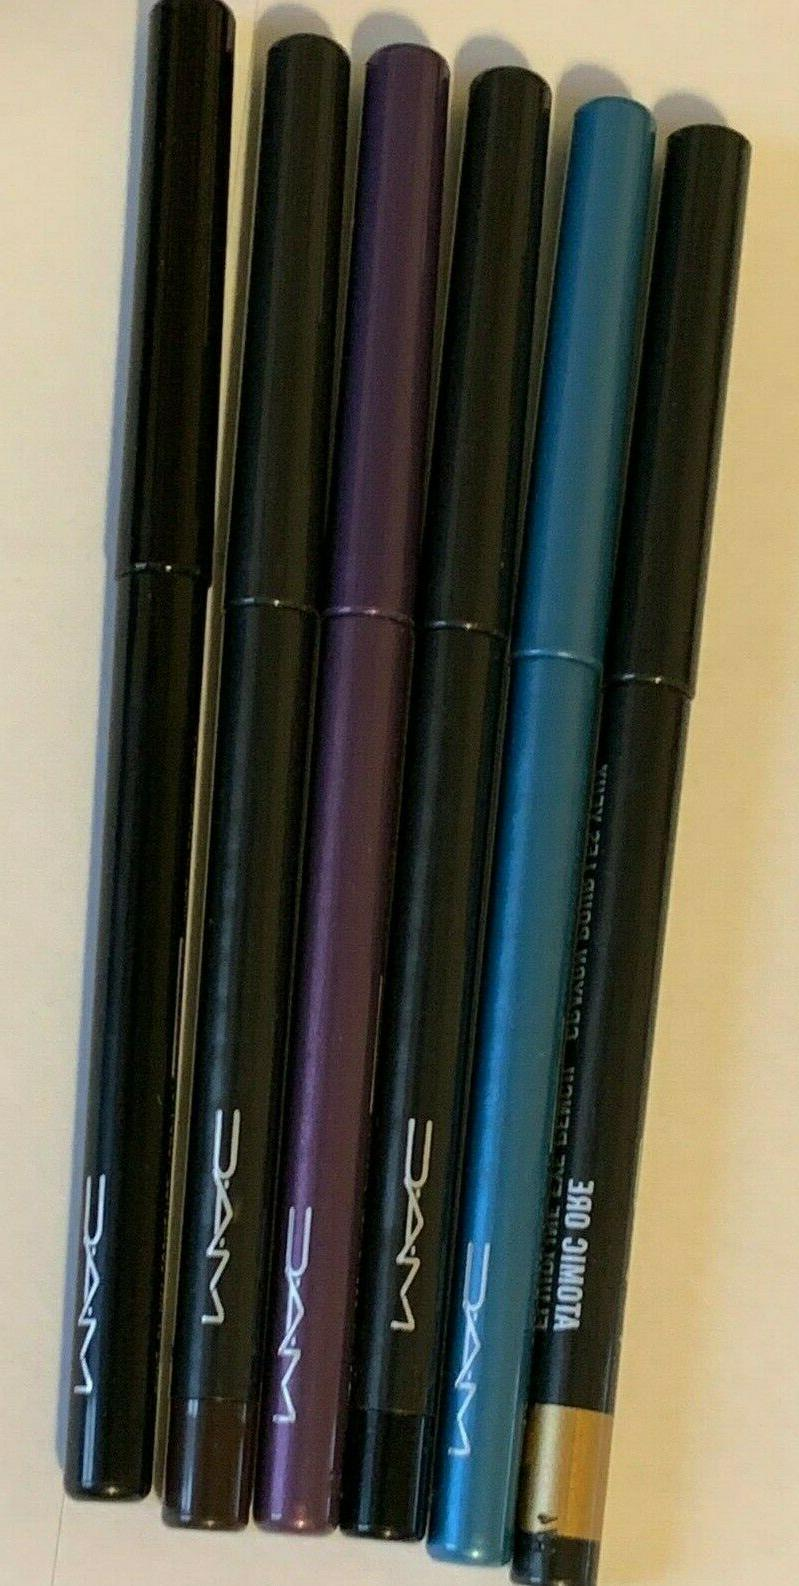 1x mac technakohl kajal fluid line eye